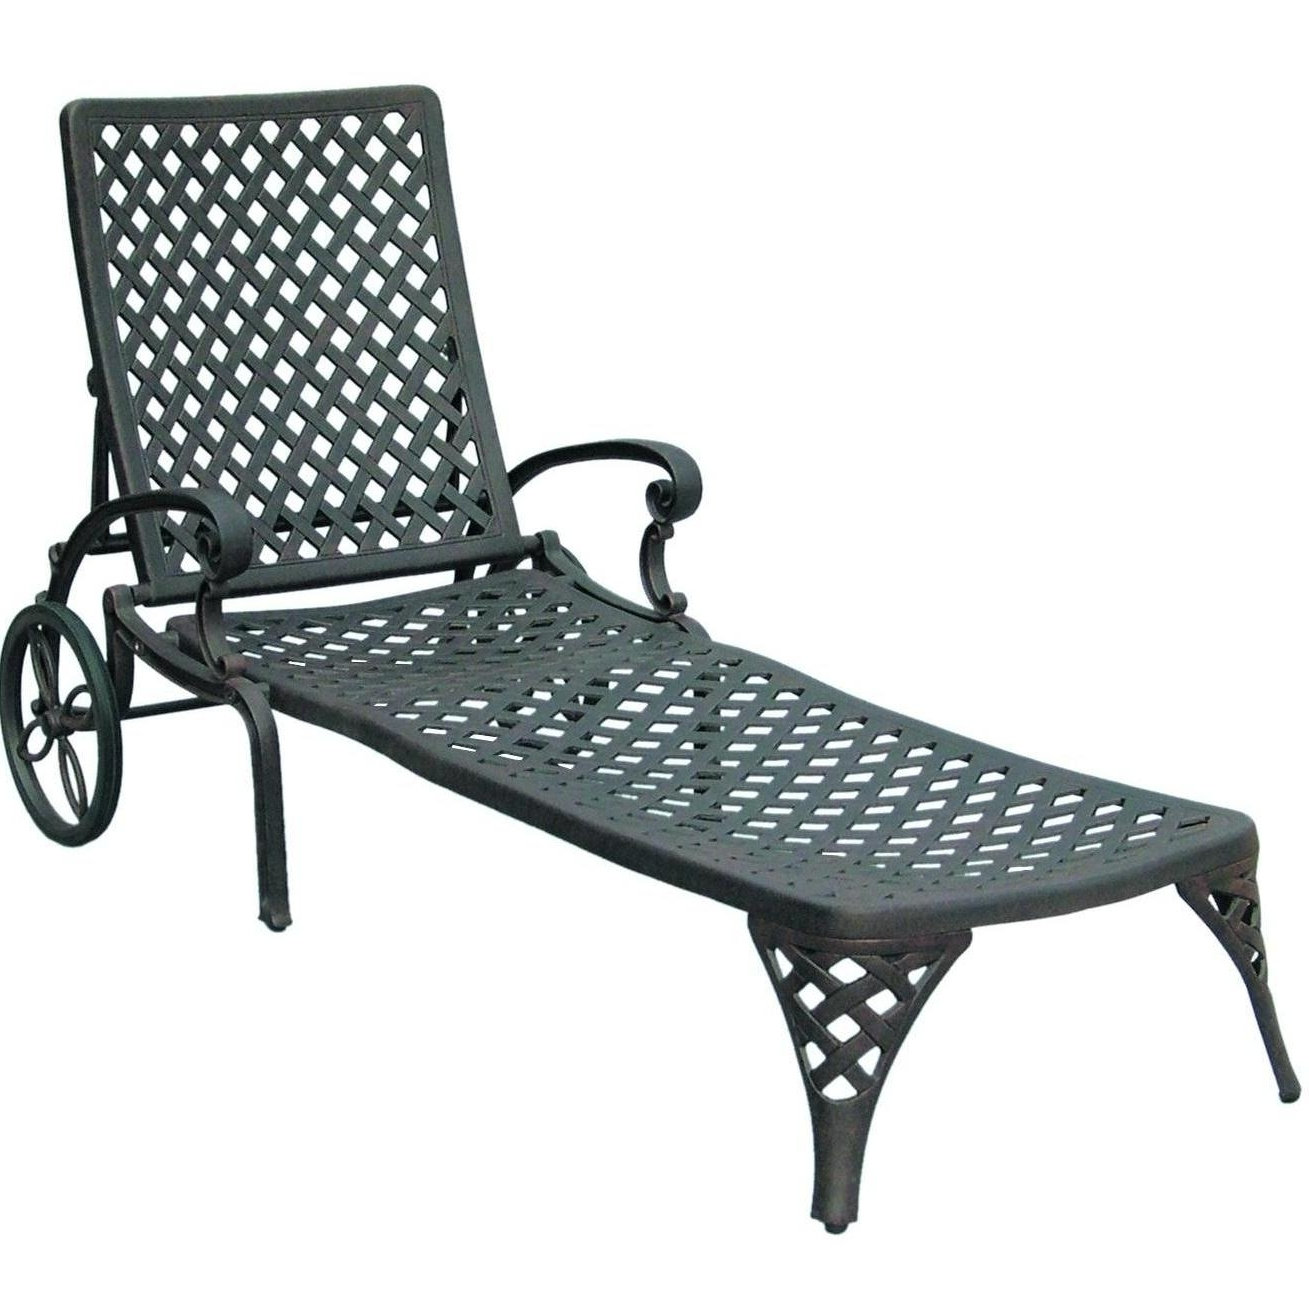 Aluminum Chaise Lounge Outdoor Chairs Pertaining To Widely Used Darlee Nassau Cast Aluminum Patio Chaise Lounge : Ultimate Patio (View 2 of 15)